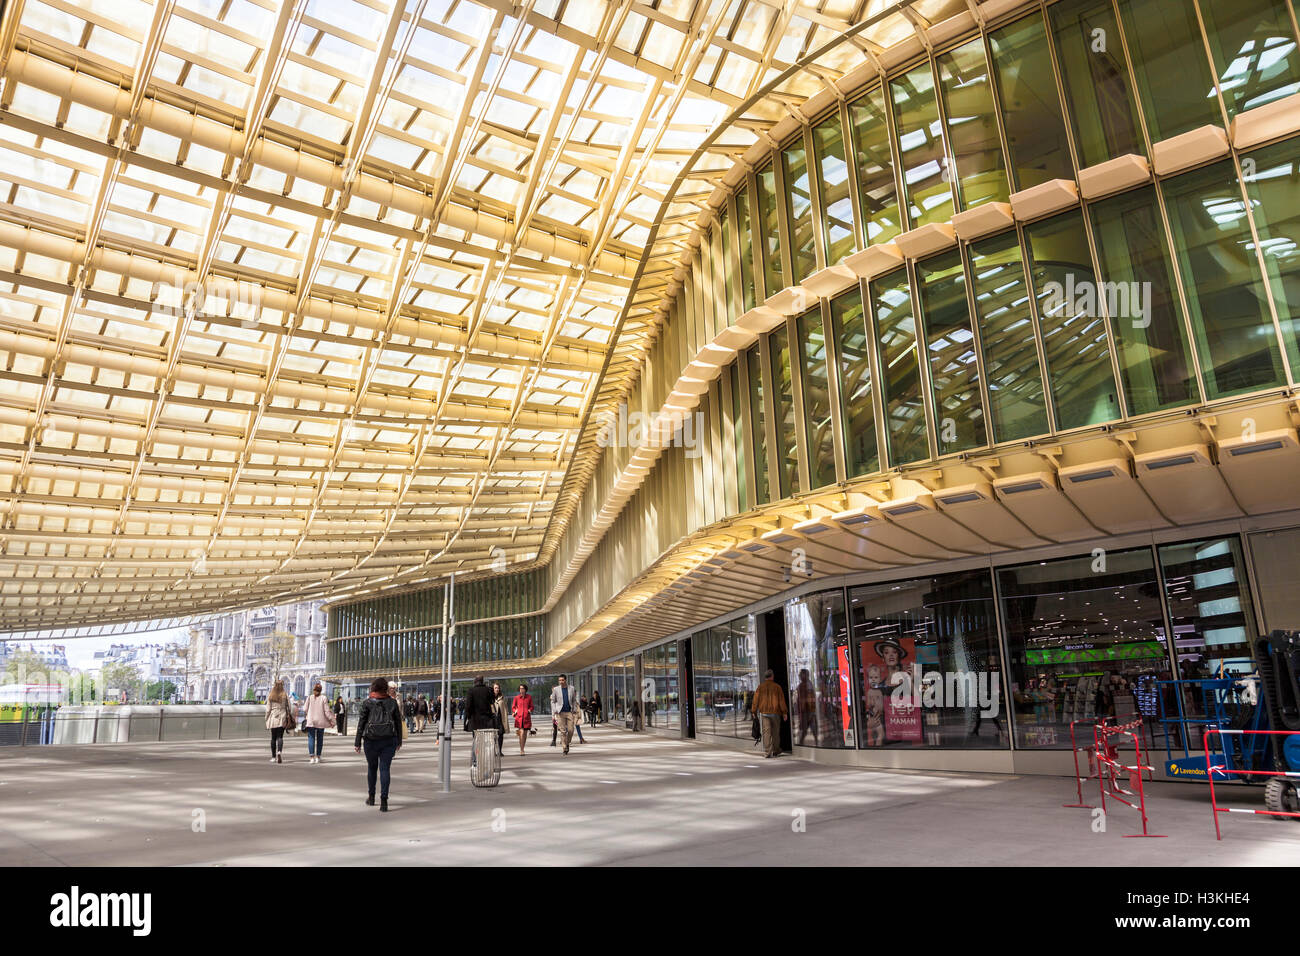 forum des halles shopping centre paris france stock photo 122747356 alamy. Black Bedroom Furniture Sets. Home Design Ideas